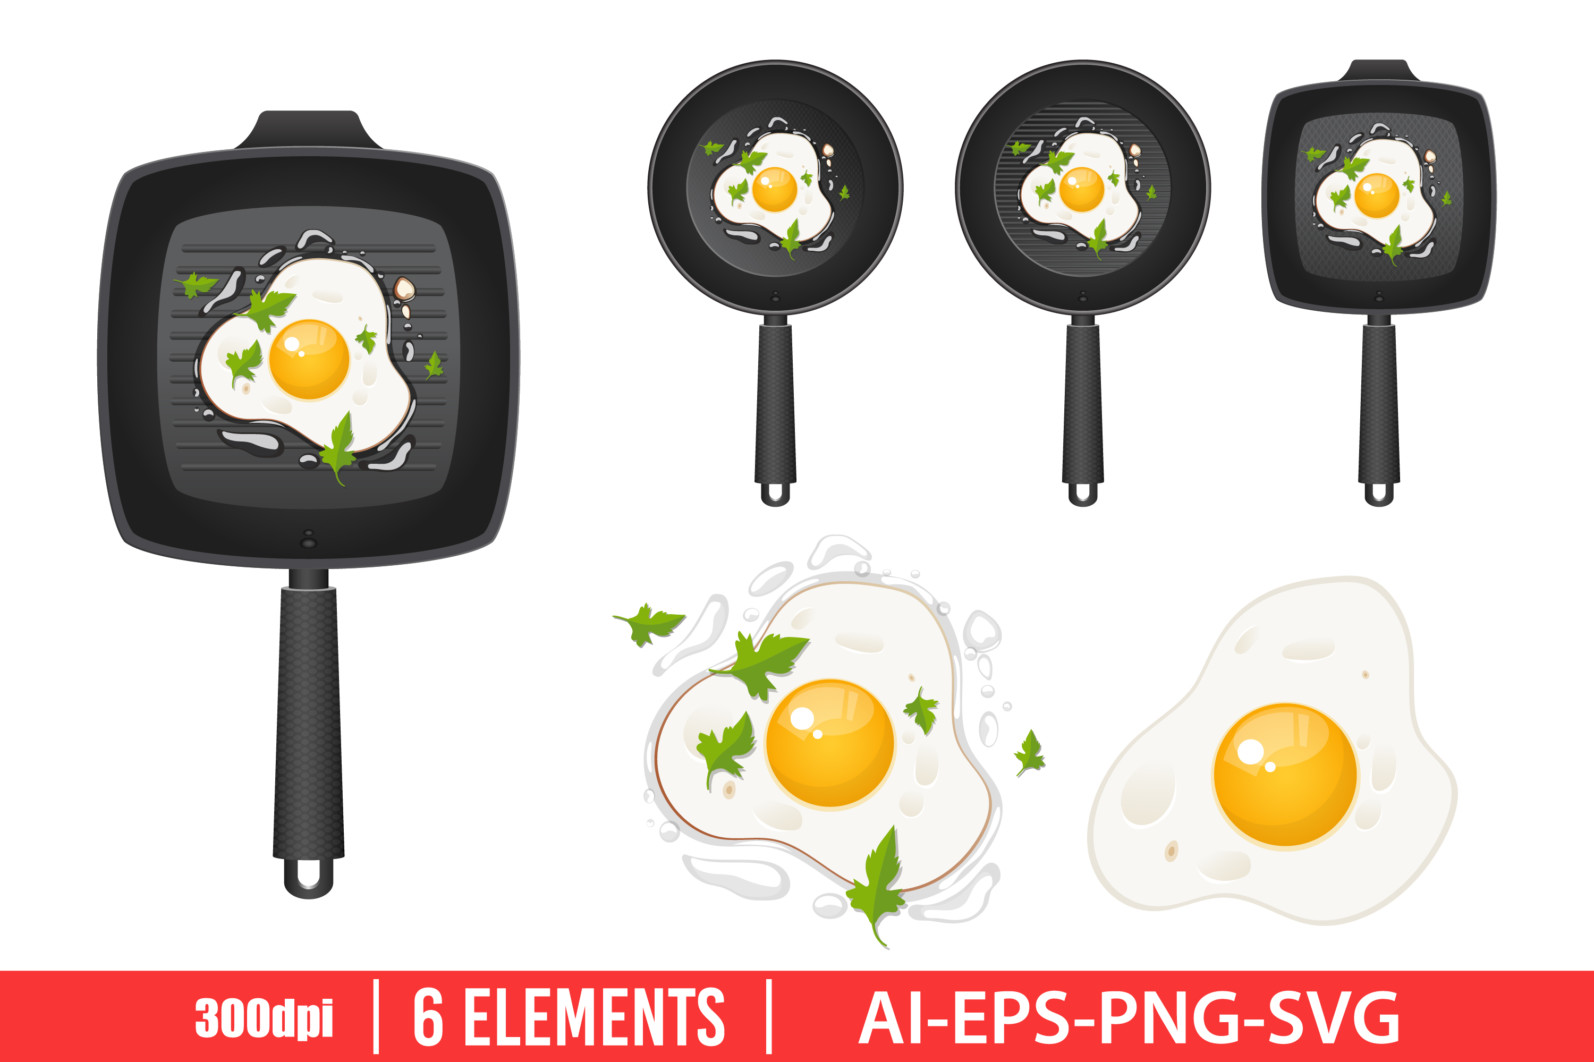 Fried egg in pan clipart vector design illustration. Fried egg set. Vector Clipart Print - FRIED EGG scaled -